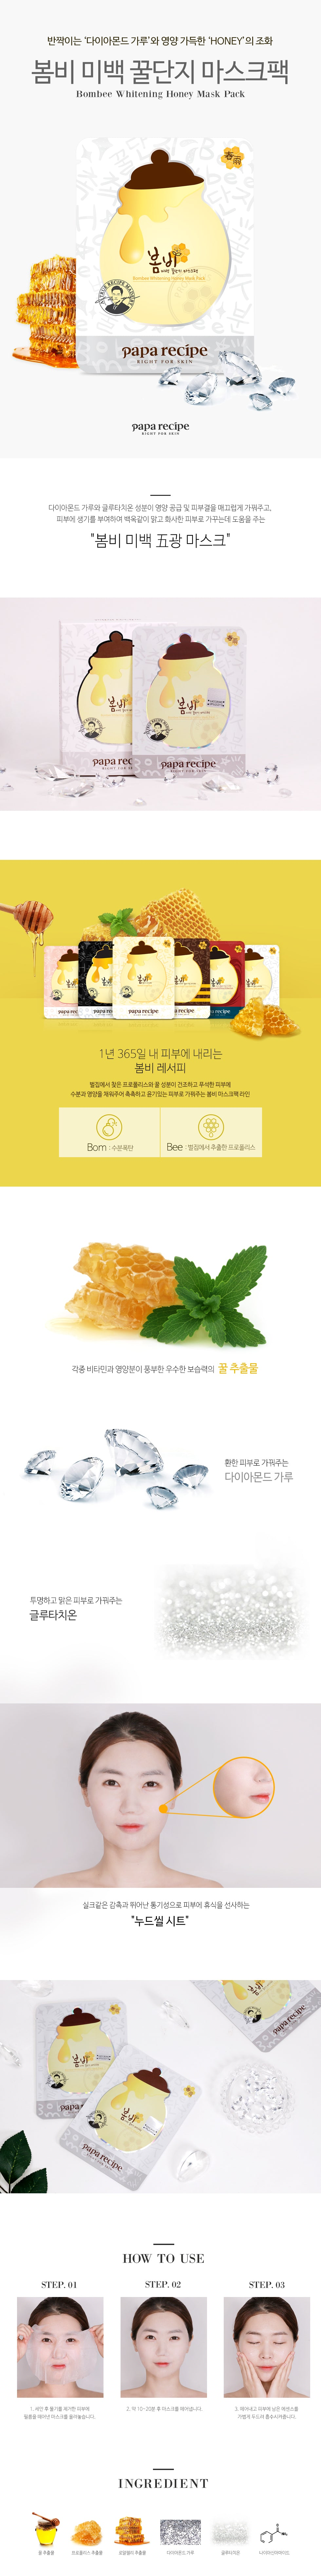 Korean Papa Recipe Whitening Honey Mask 韩国春雨蜂蜜美白面膜